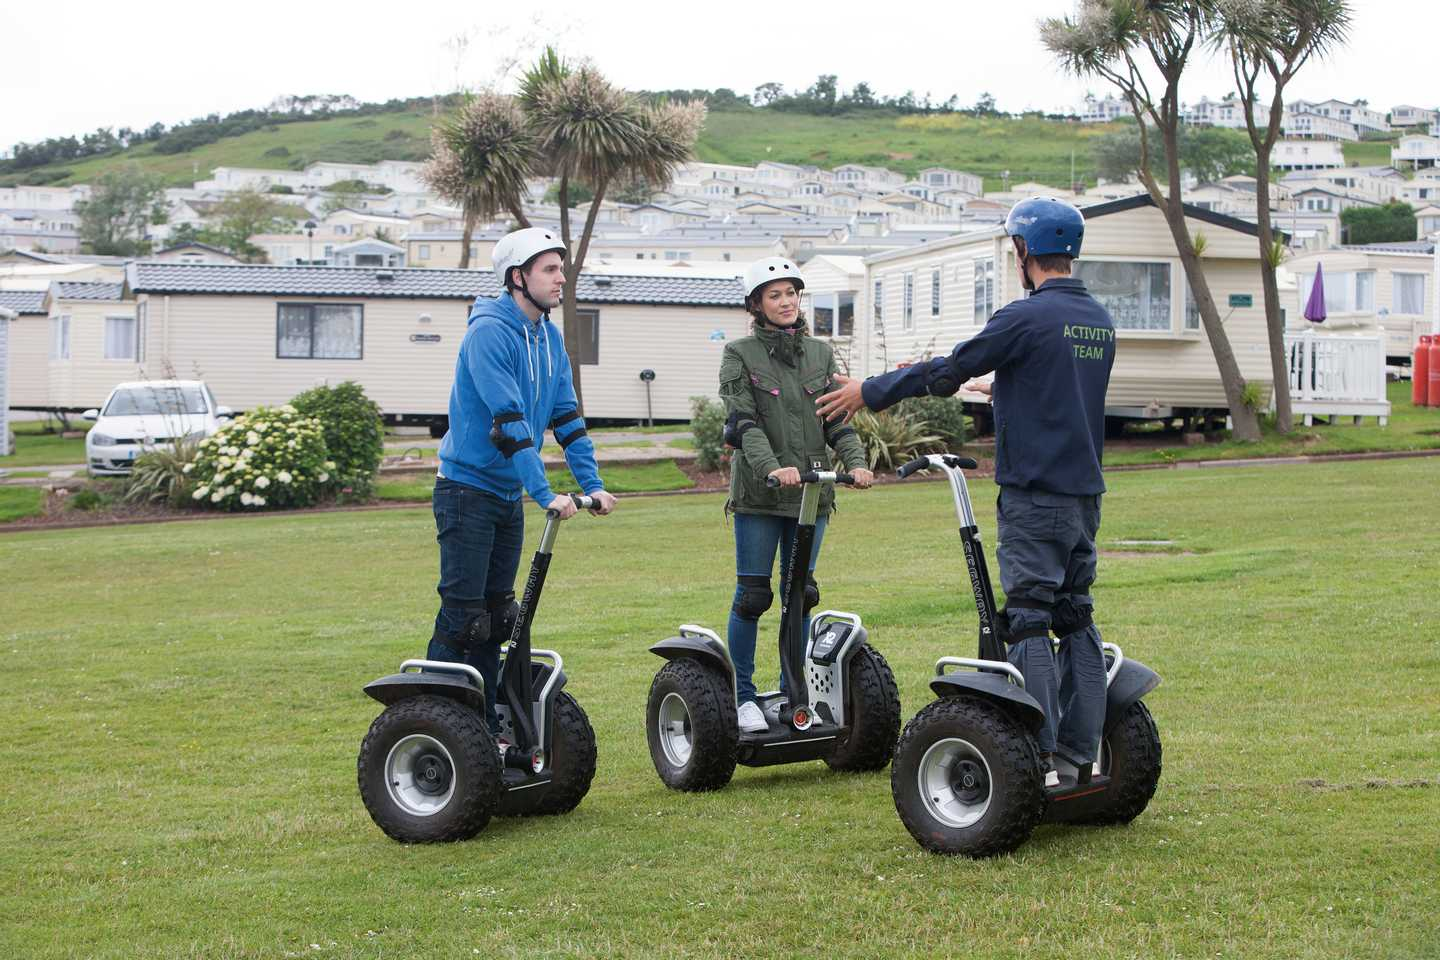 Guests riding on a Segway at Devon Cliffs